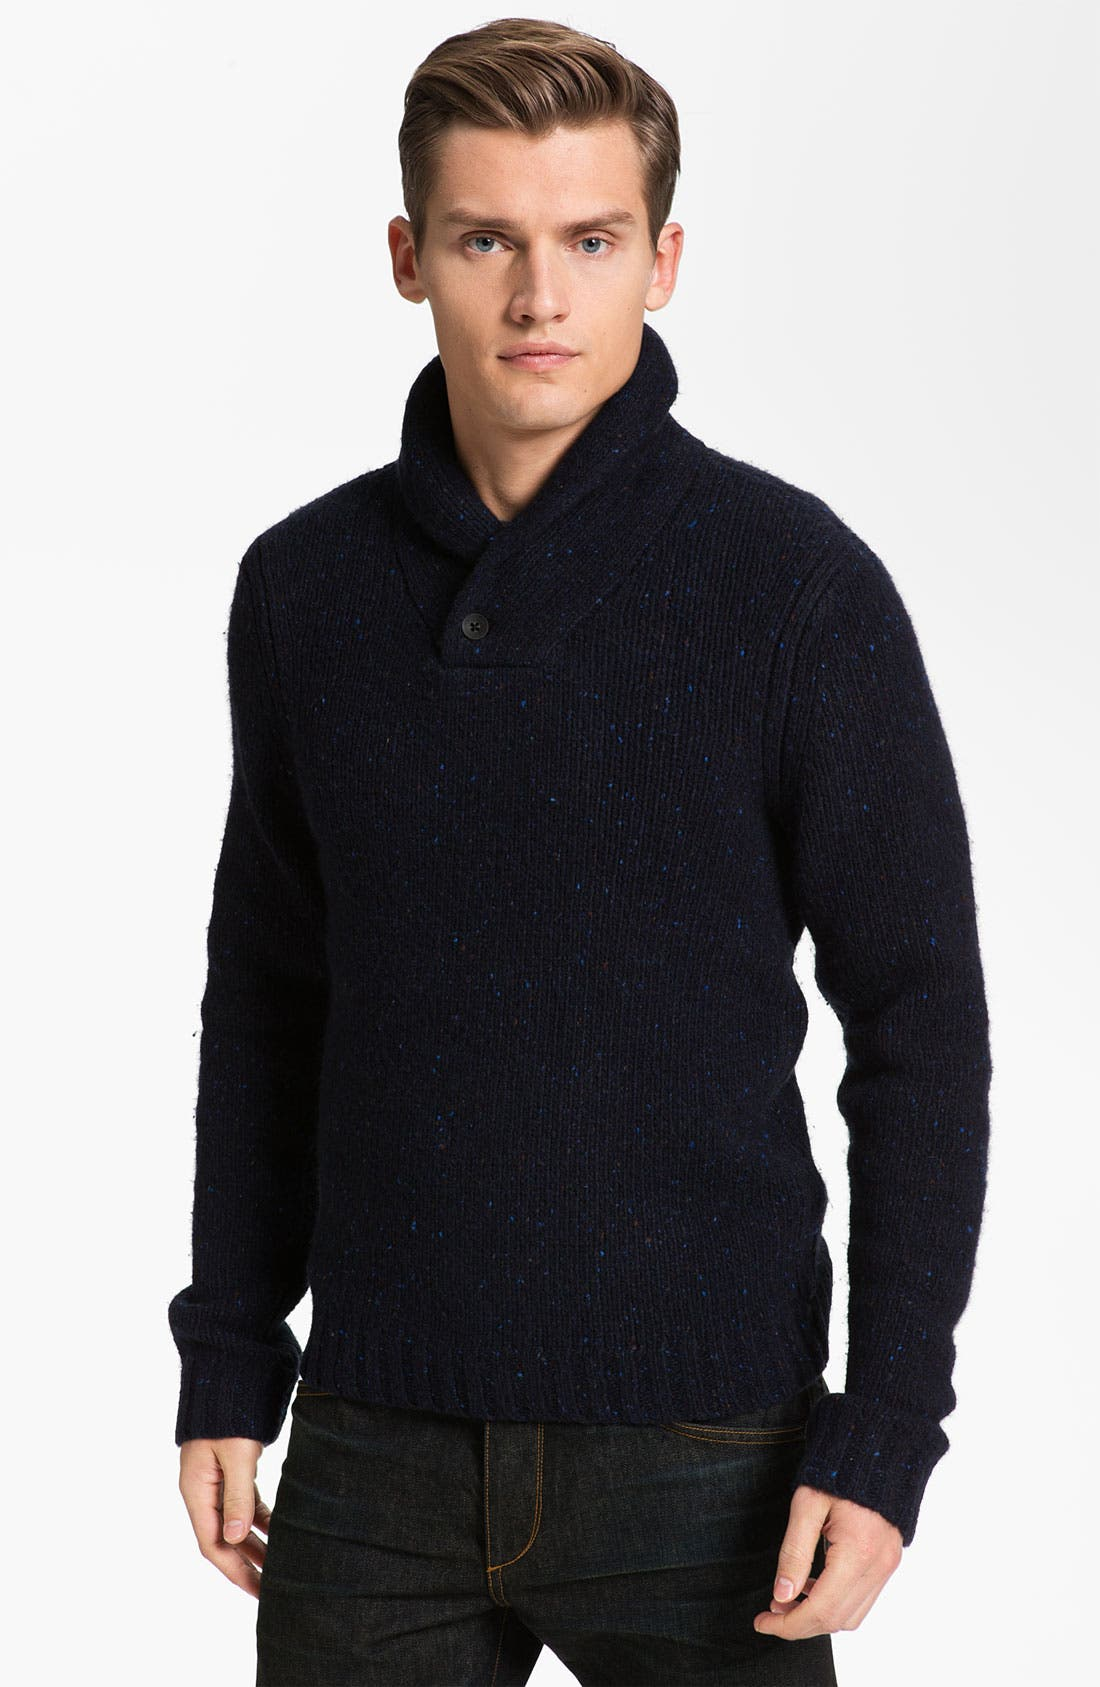 Main Image - rag & bone 'Vail' Donegal Knit Shawl Collar Sweater